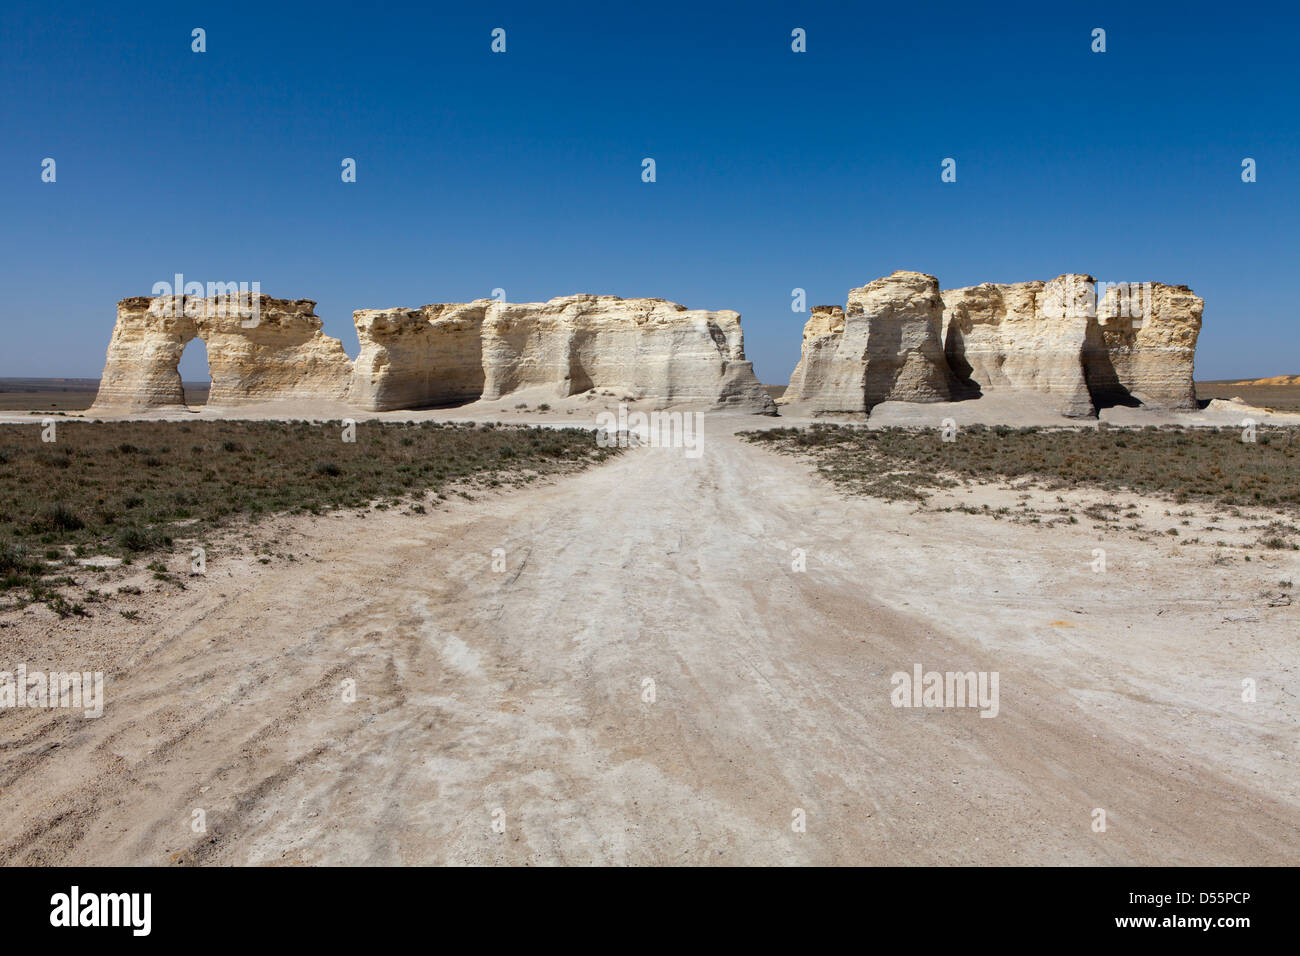 Rock formations on a landscape, Monument Rocks, Gove County